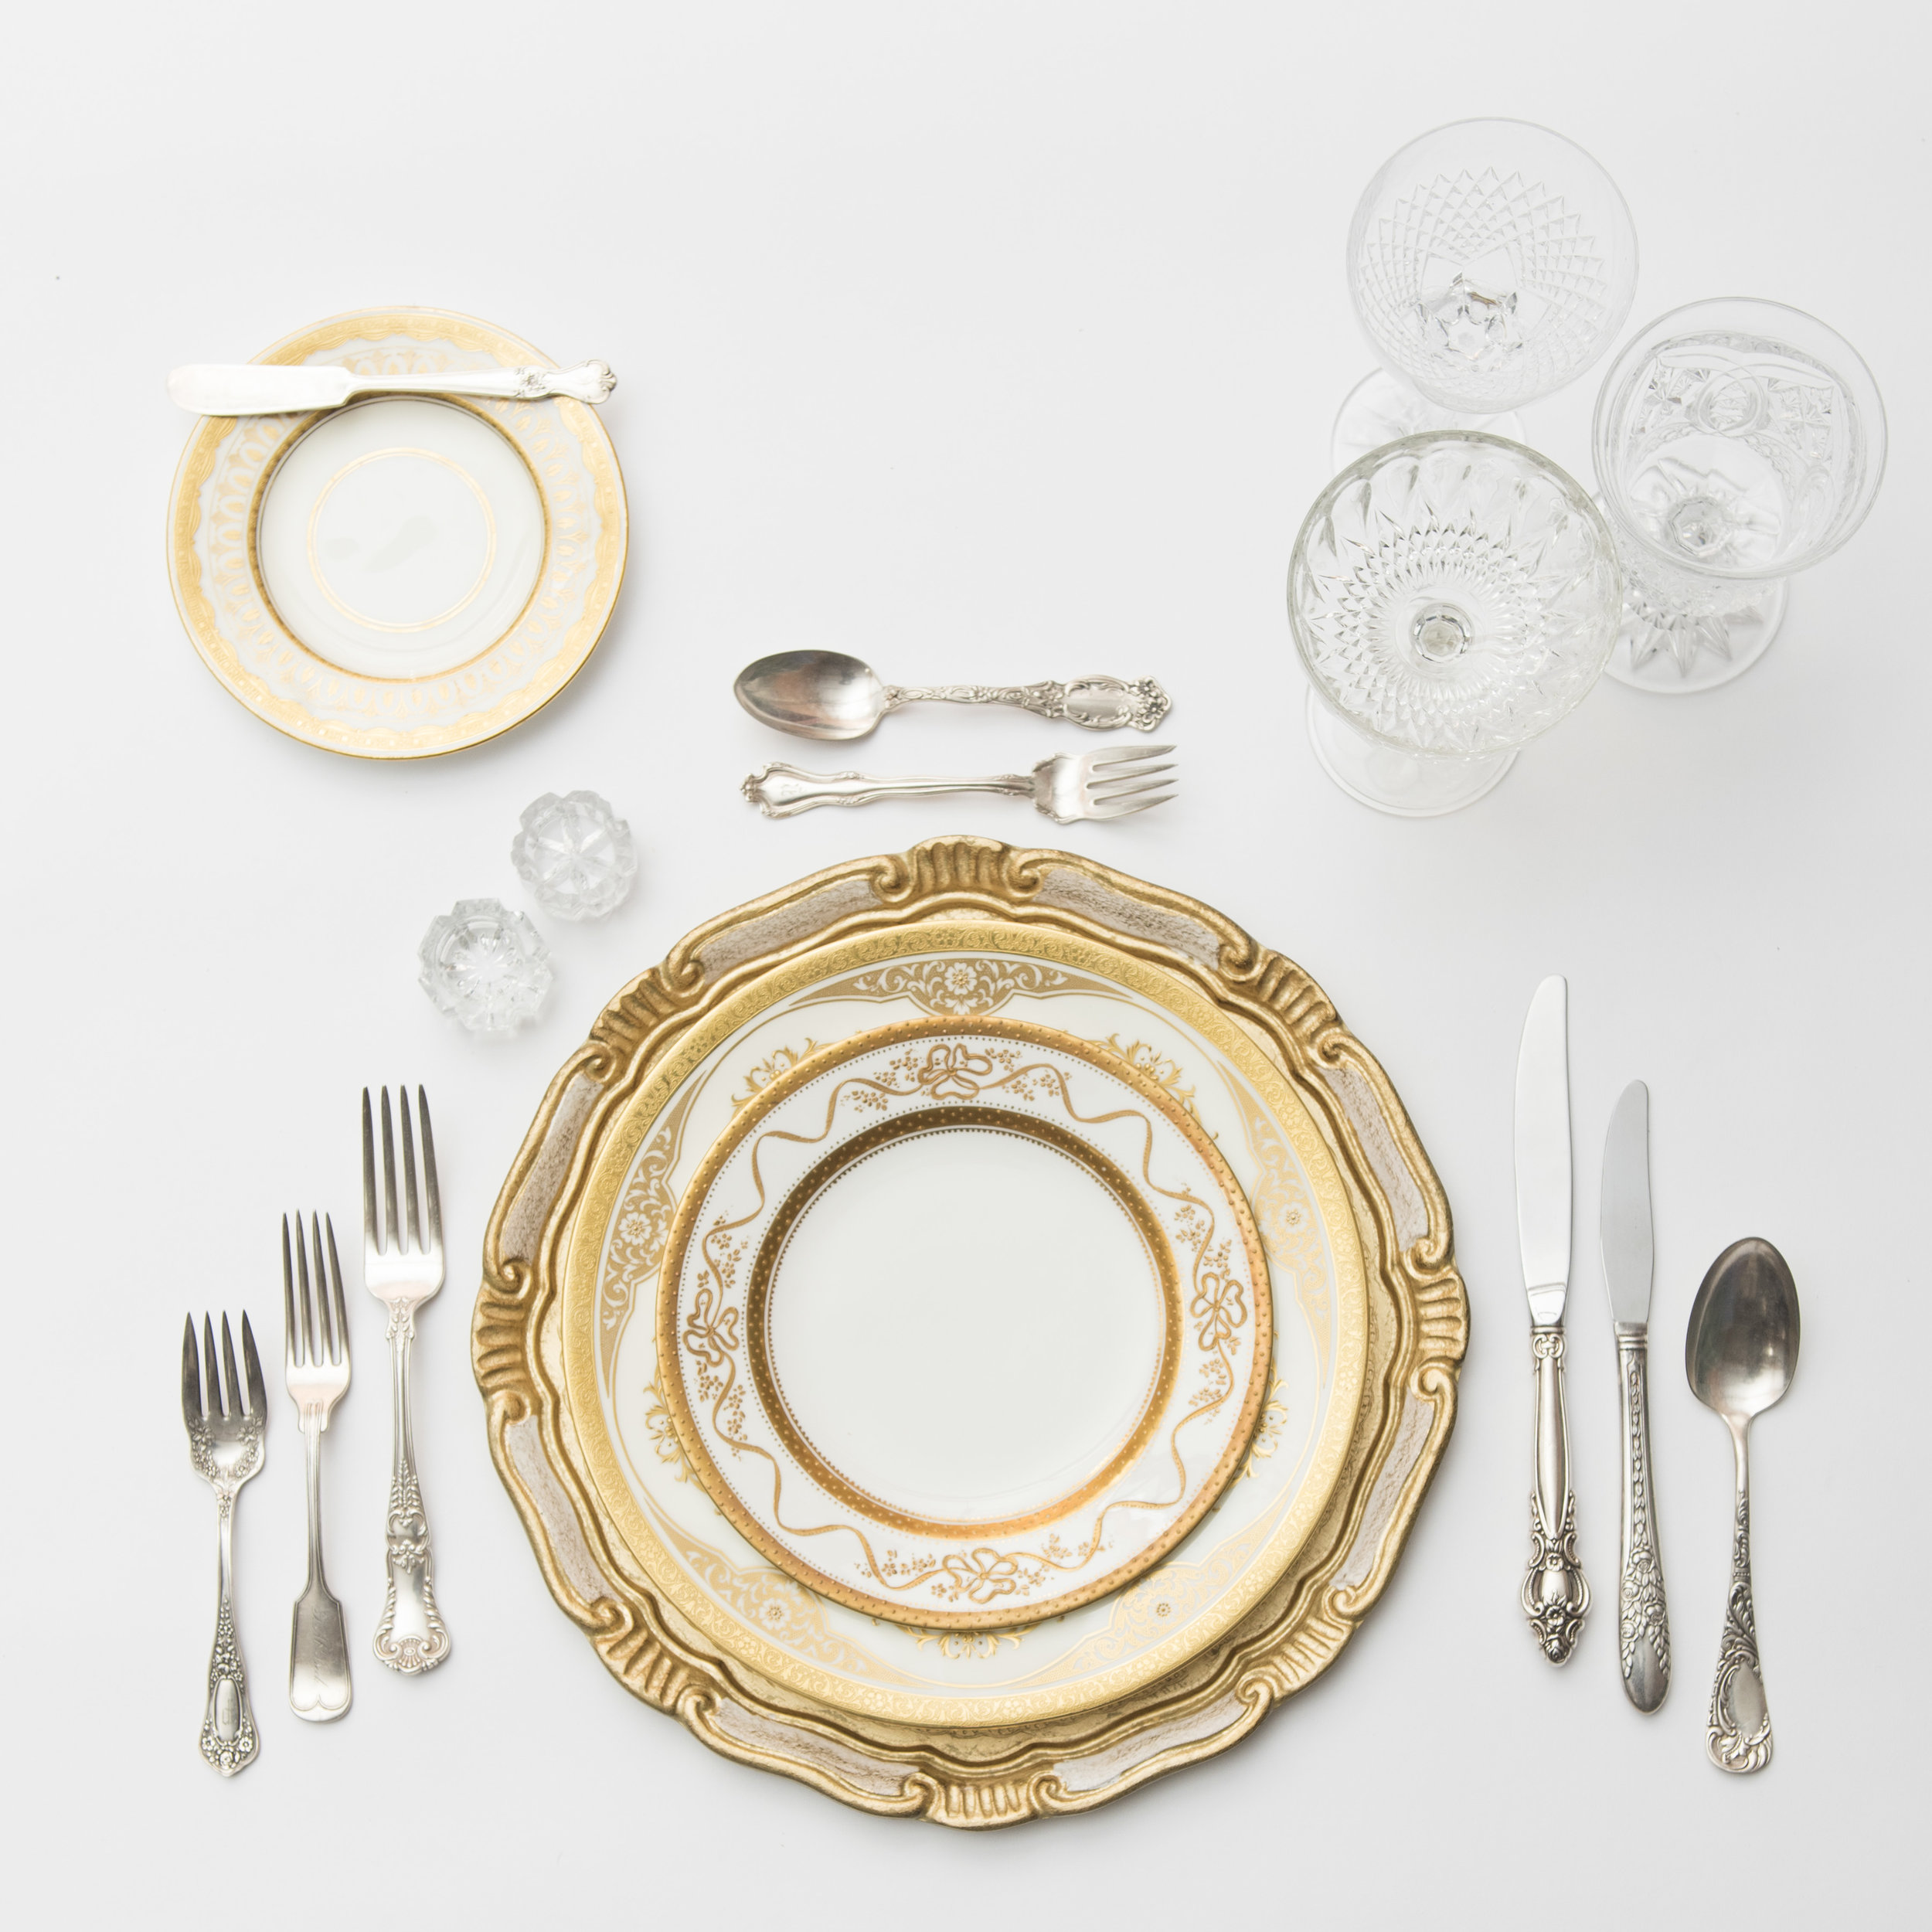 RENT: Florentine Chargers in White/Gold + Crown Gold Collection Vintage China + Antique Silver Flatware + Vintage Cut Crystal Goblets + Early American Pressed Glass Goblets + Vintage Champagne Coupes + Antique Crystal Salt Cellars   SHOP: Florentine Chargers in White/Gold